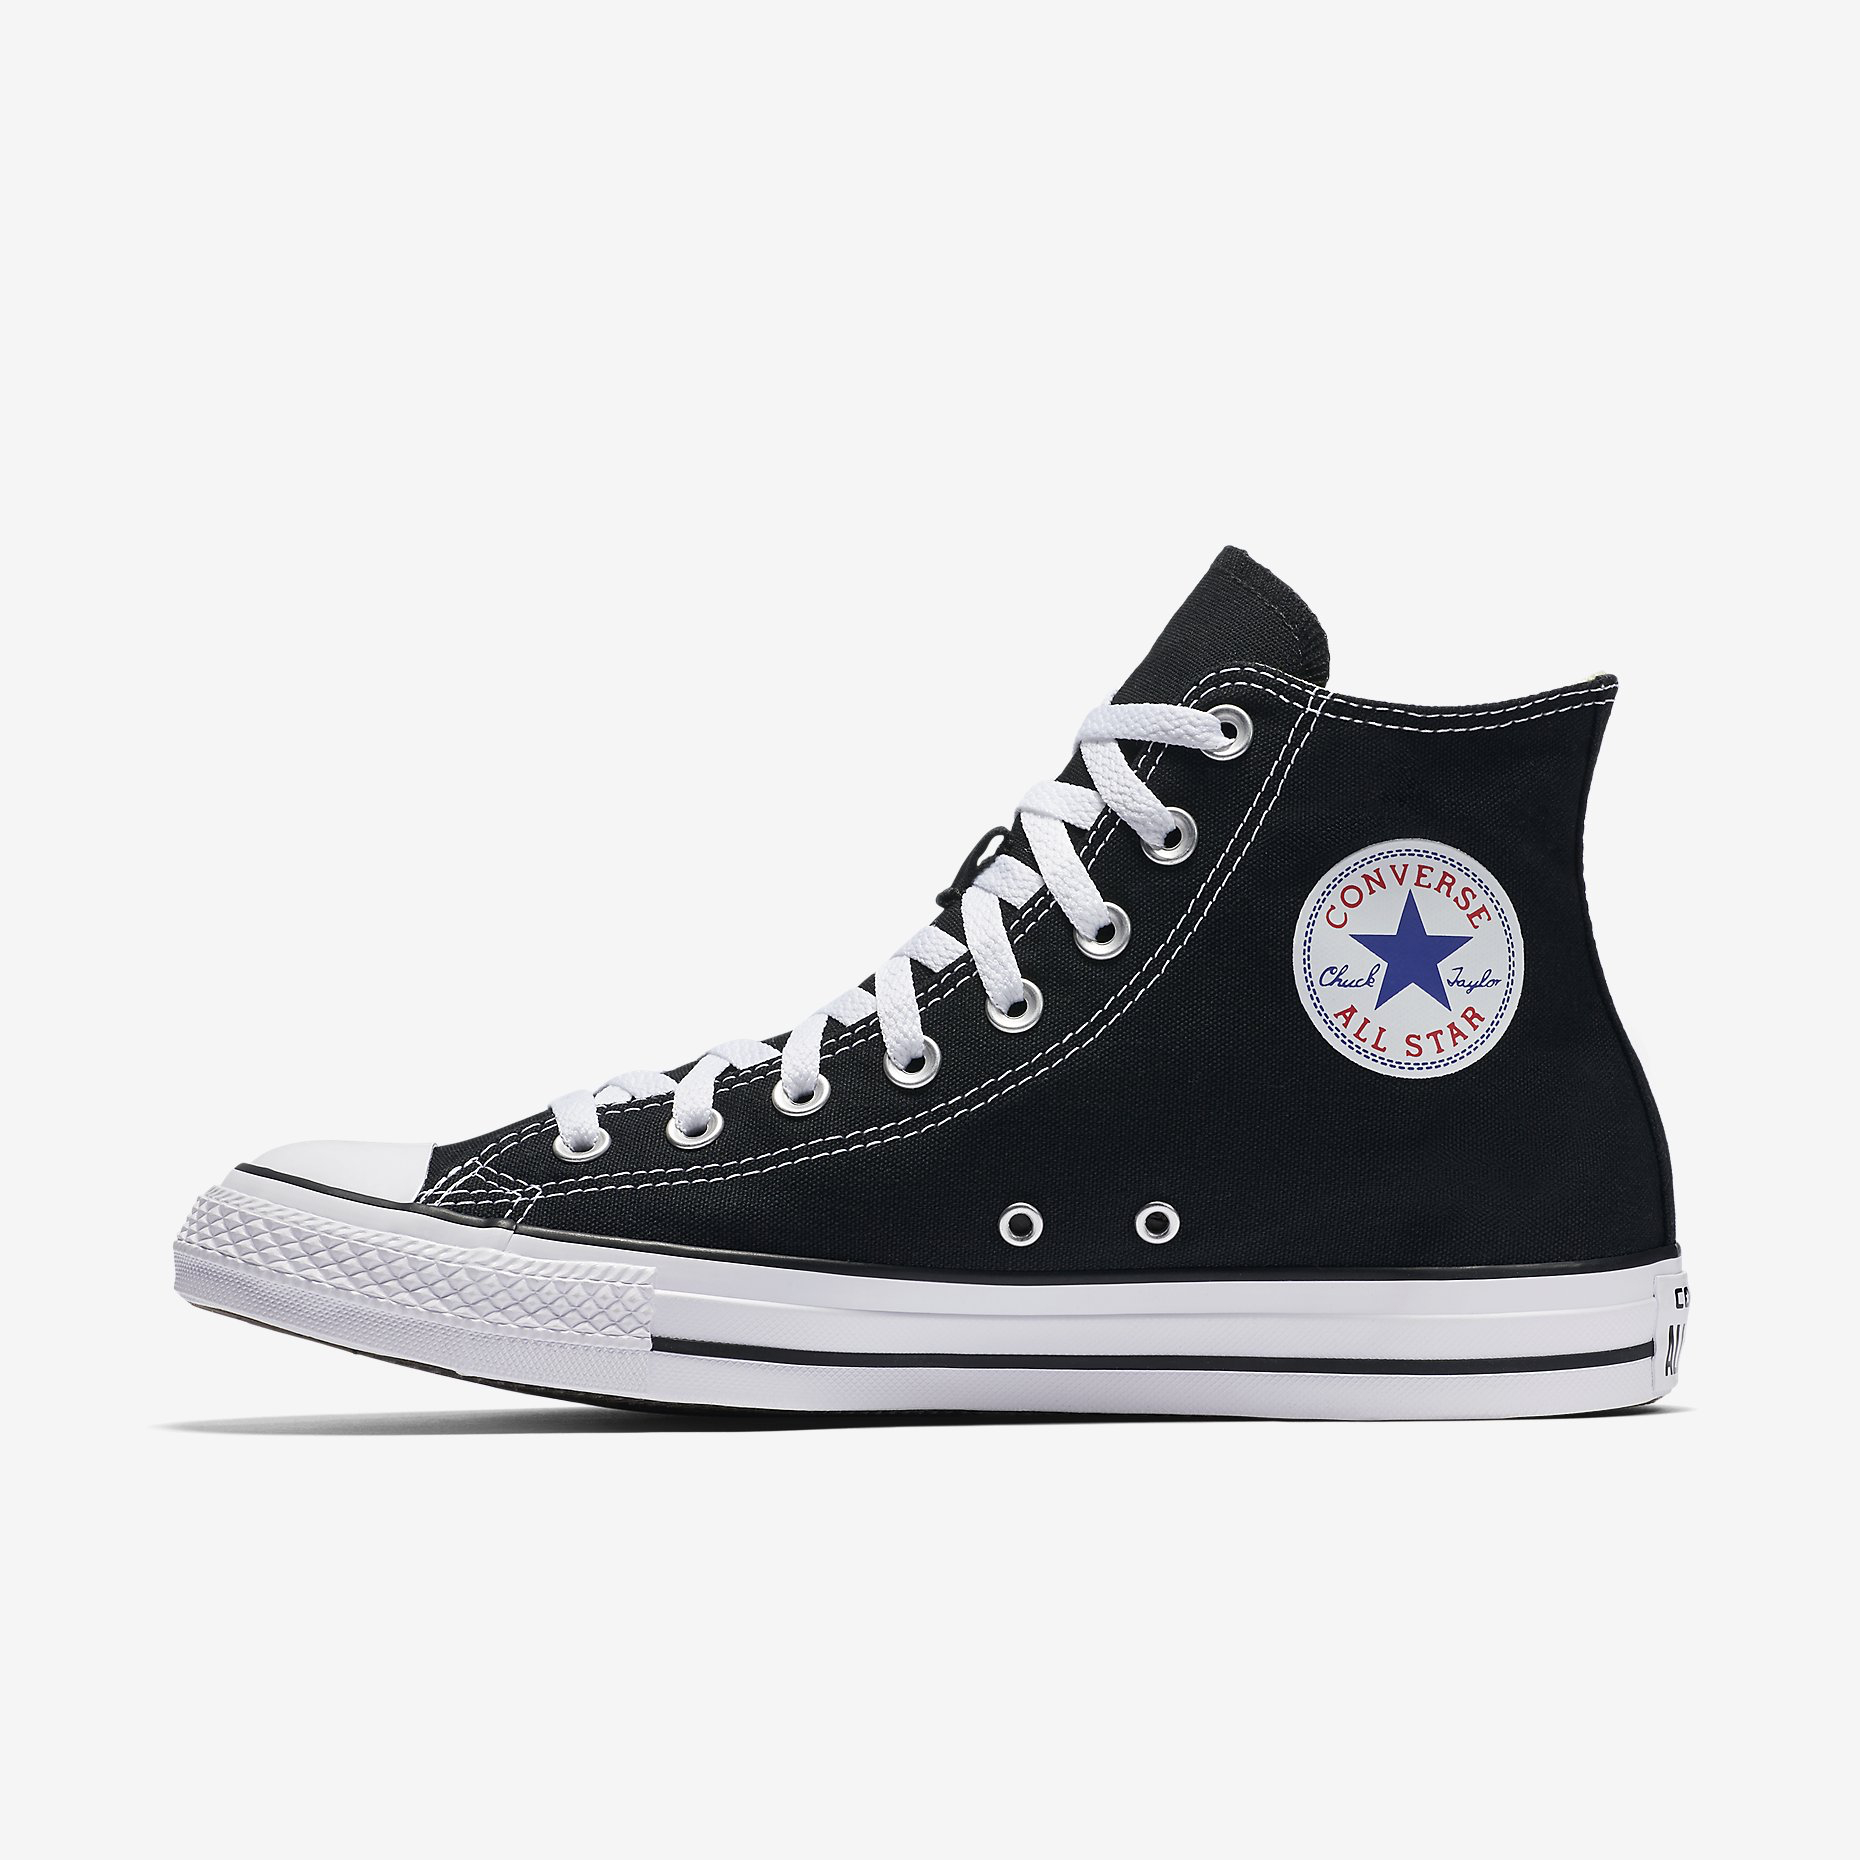 8f10df3472d454 Converse Chuck Taylor All Star Womens High Top Black in 2019 ...